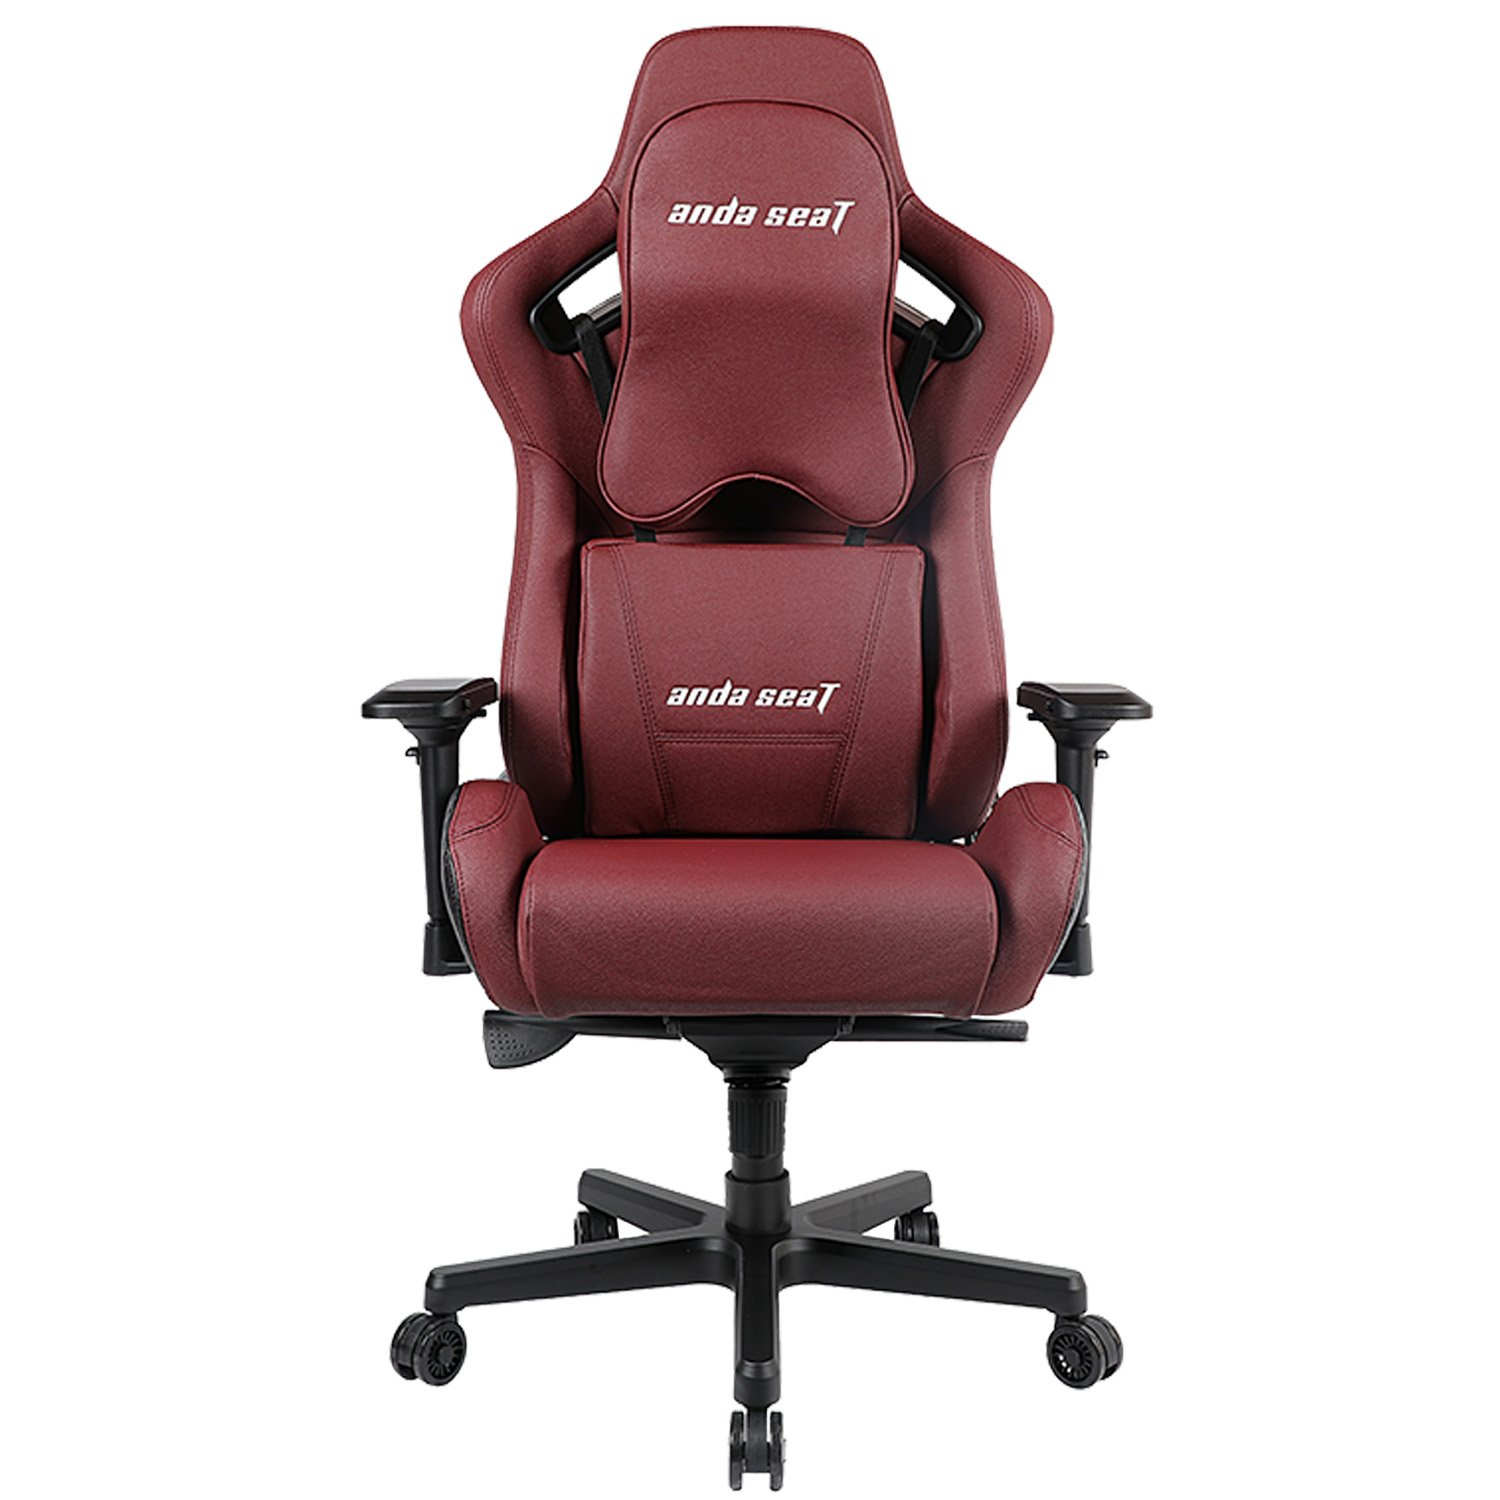 Anda Seat Kaiser Series Premium Gaming Chair ( AD12XL-02-AB-PV/C-A02)